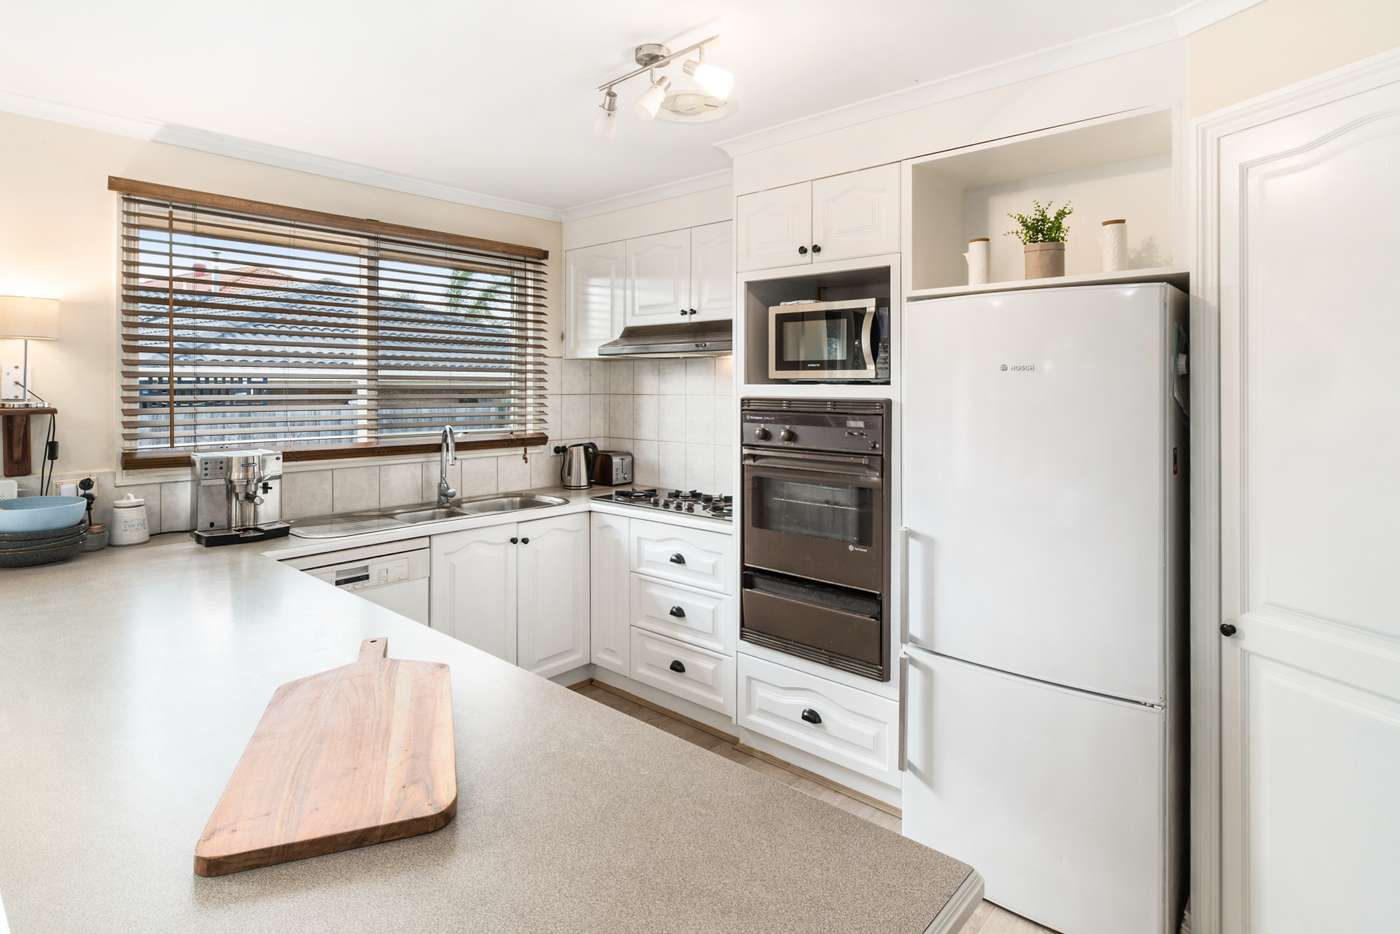 Main view of Homely house listing, 20 Madeleine Court, Somerville VIC 3912